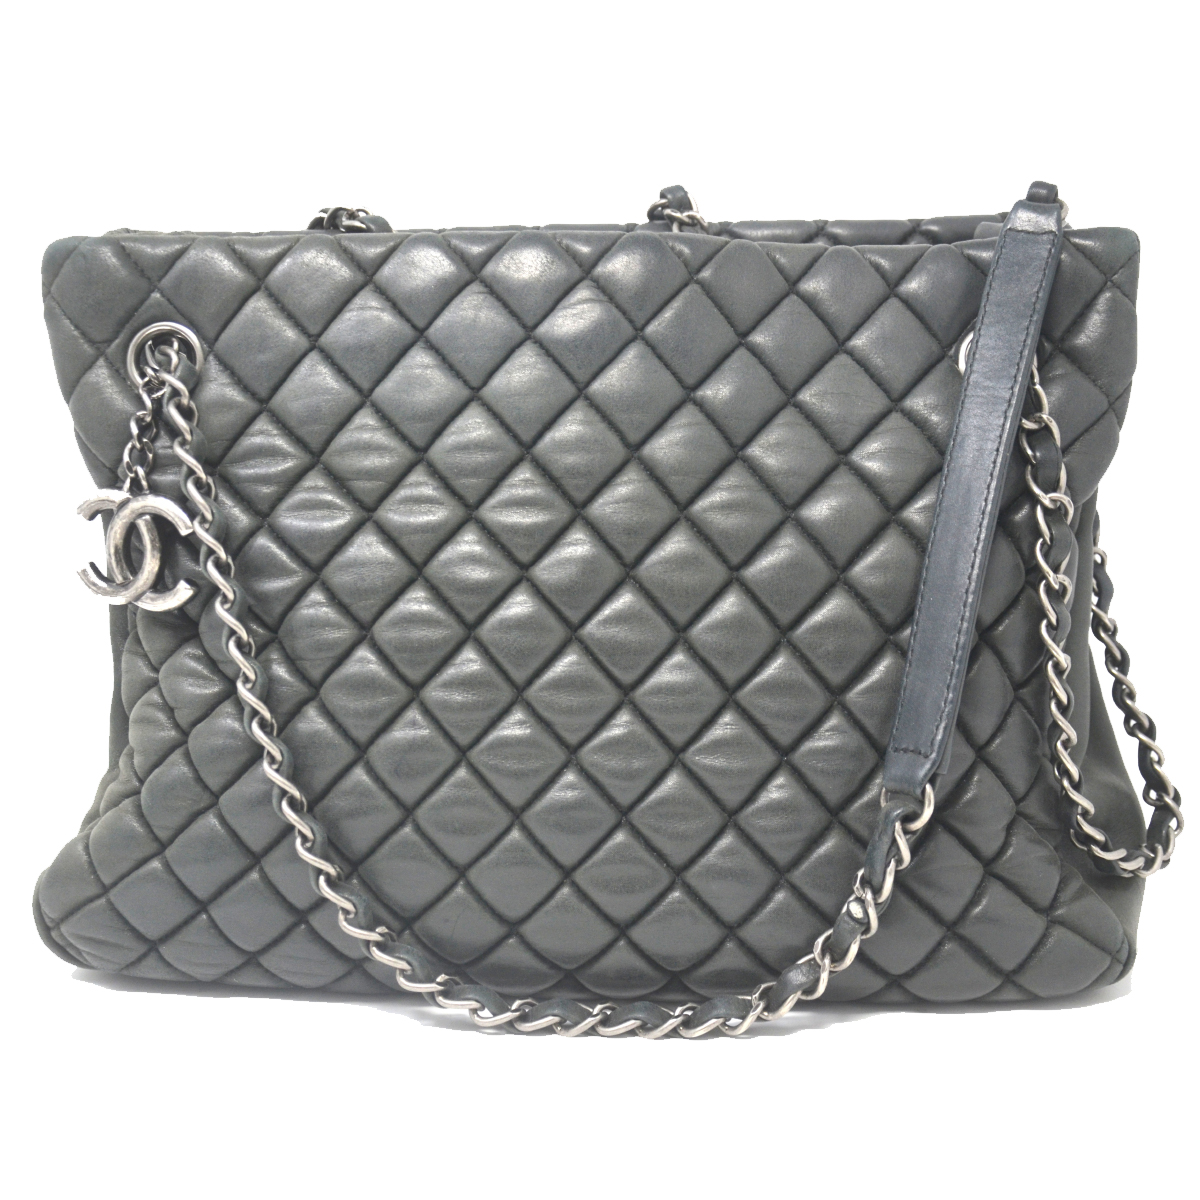 Chanel Charcoal Calfskin Leather Bubble Small Tote Bag